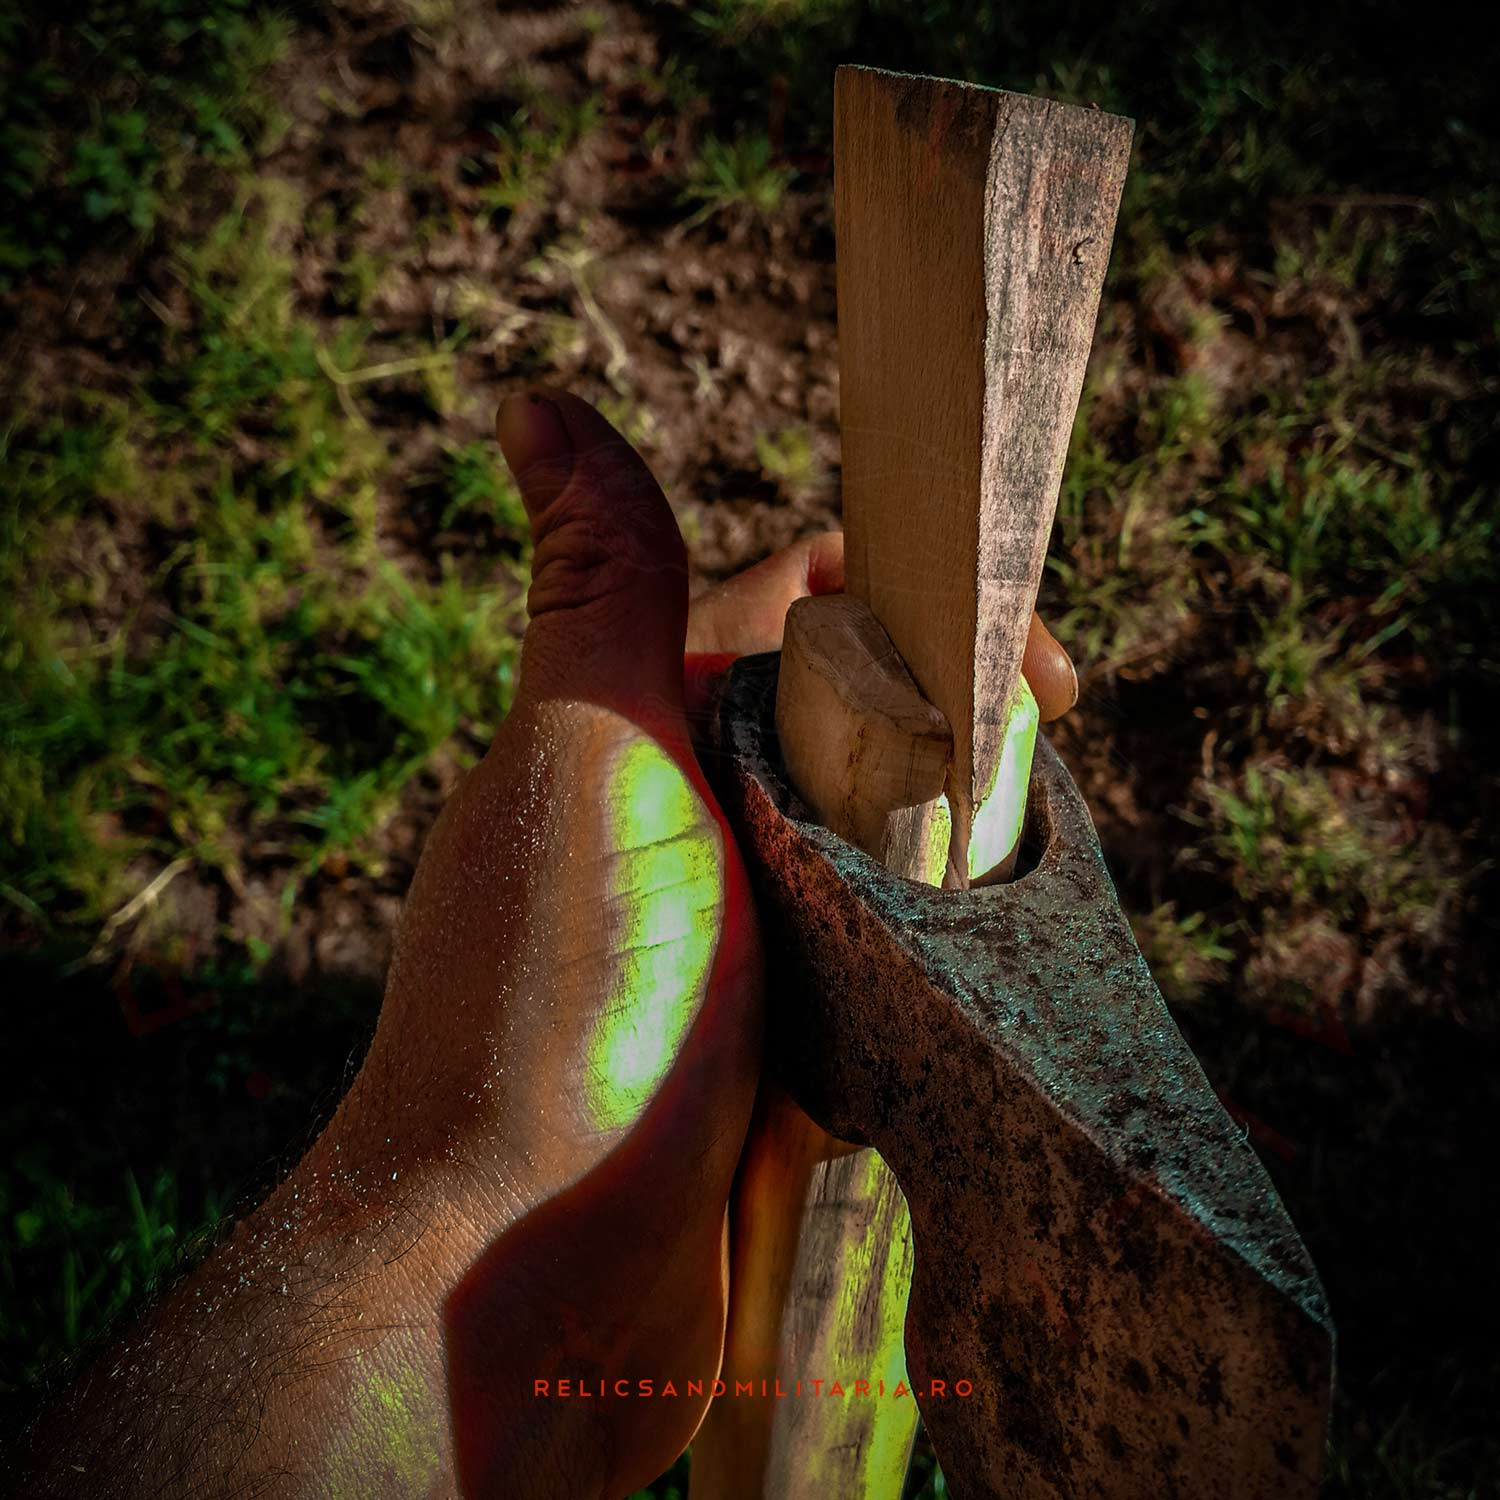 How to set an axe handle in the metal head